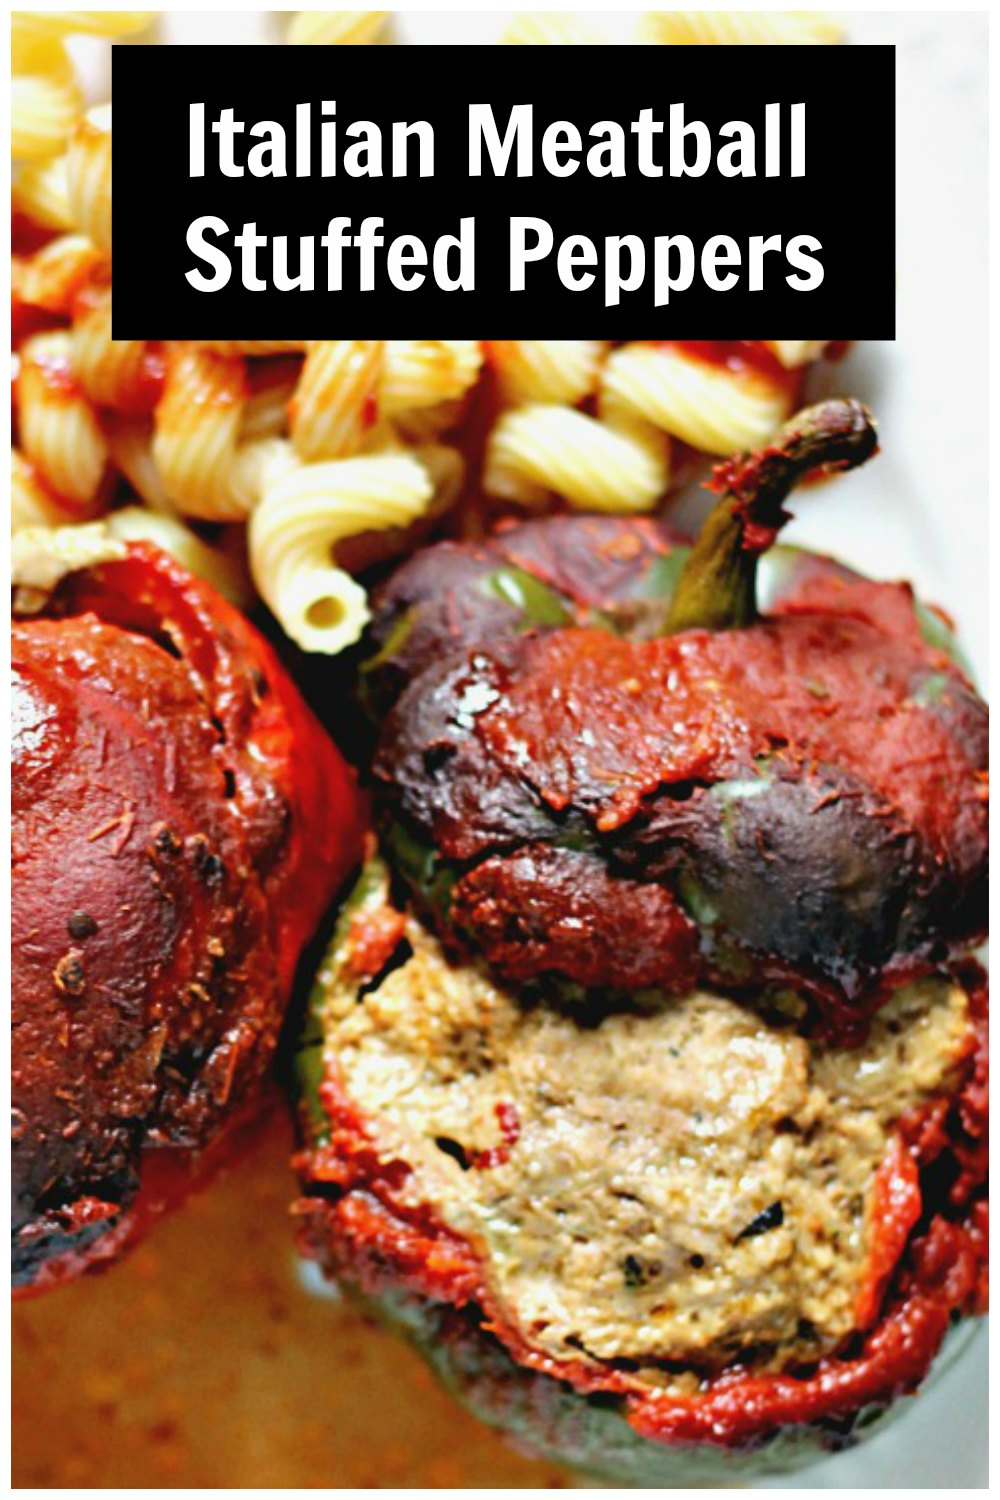 Stuffed meatball pepper with tomato sauce and pasta and text overlay